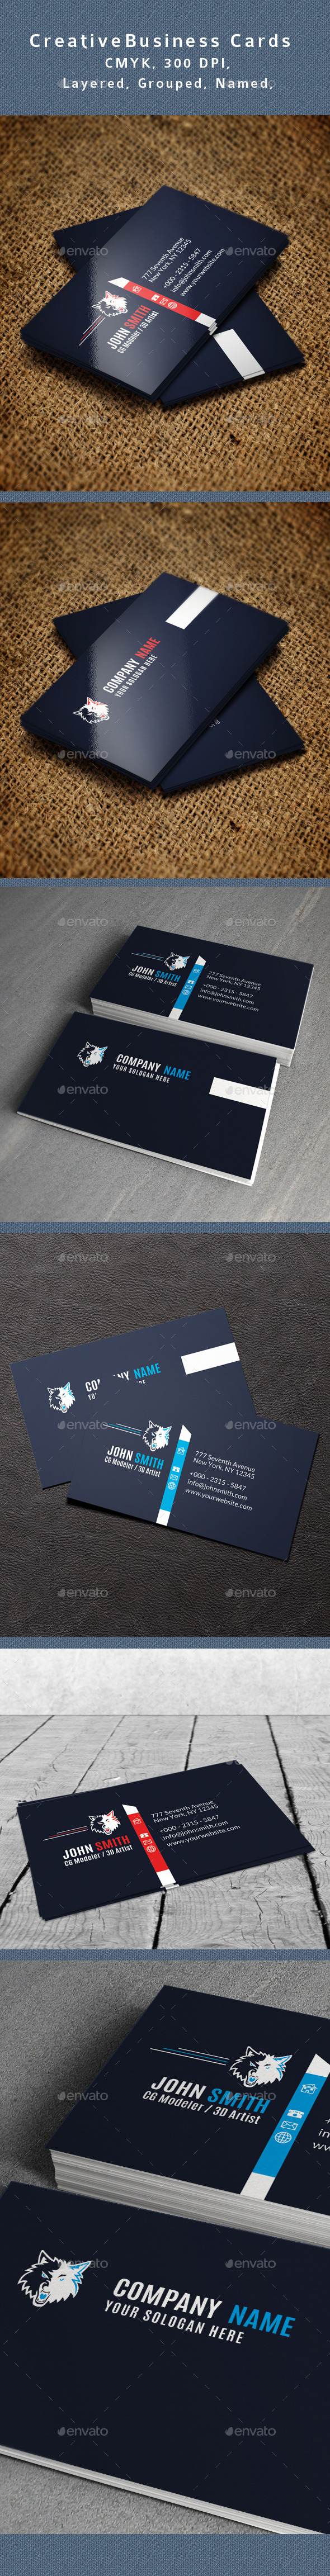 GraphicRiver Creative Business Card V3 10946464